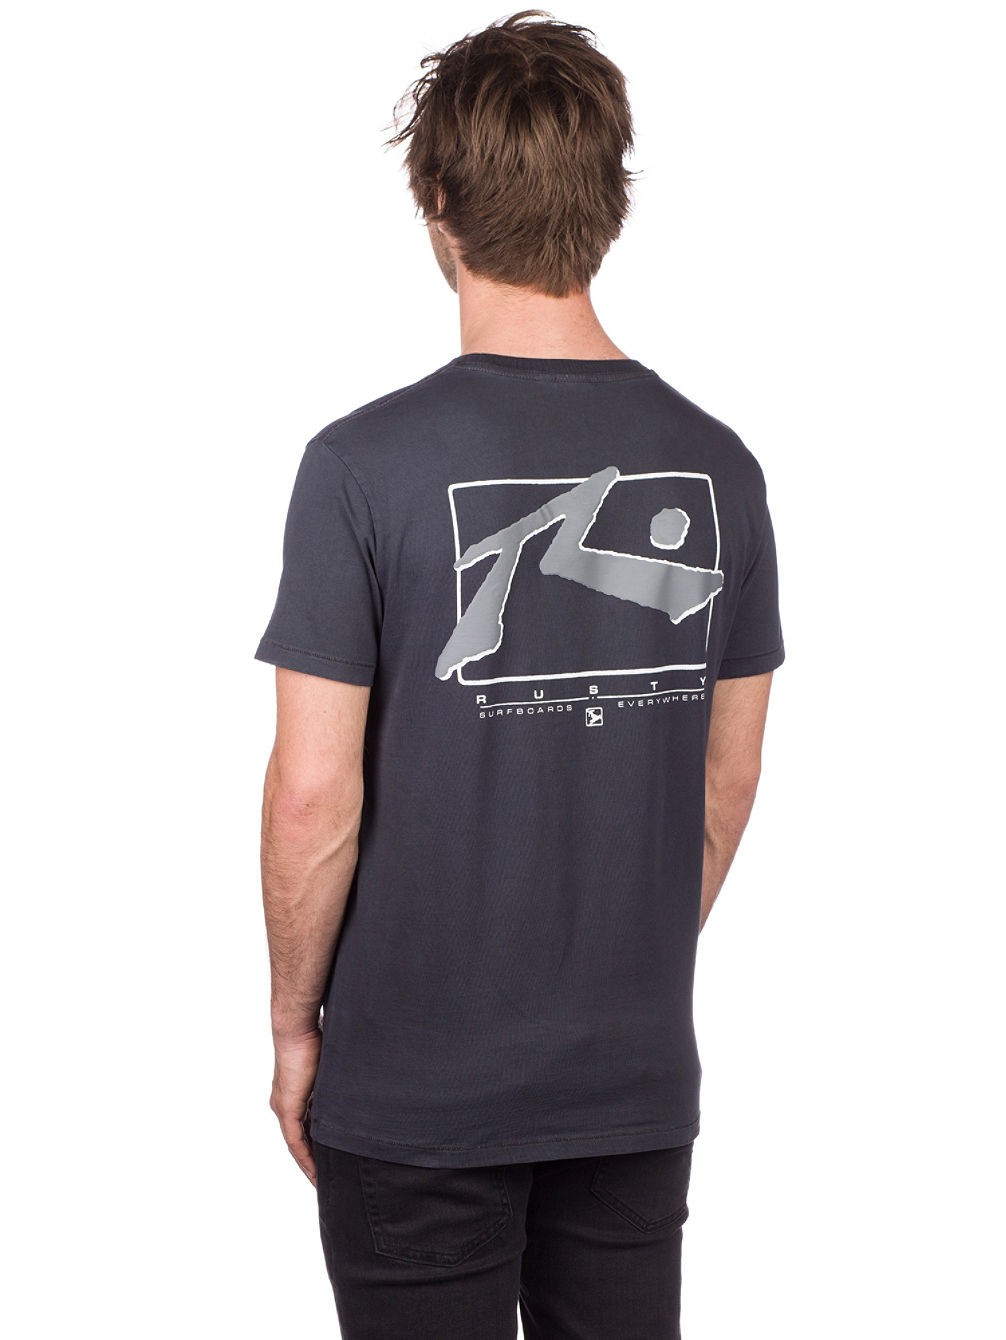 Tv Screen 5 T-Shirt